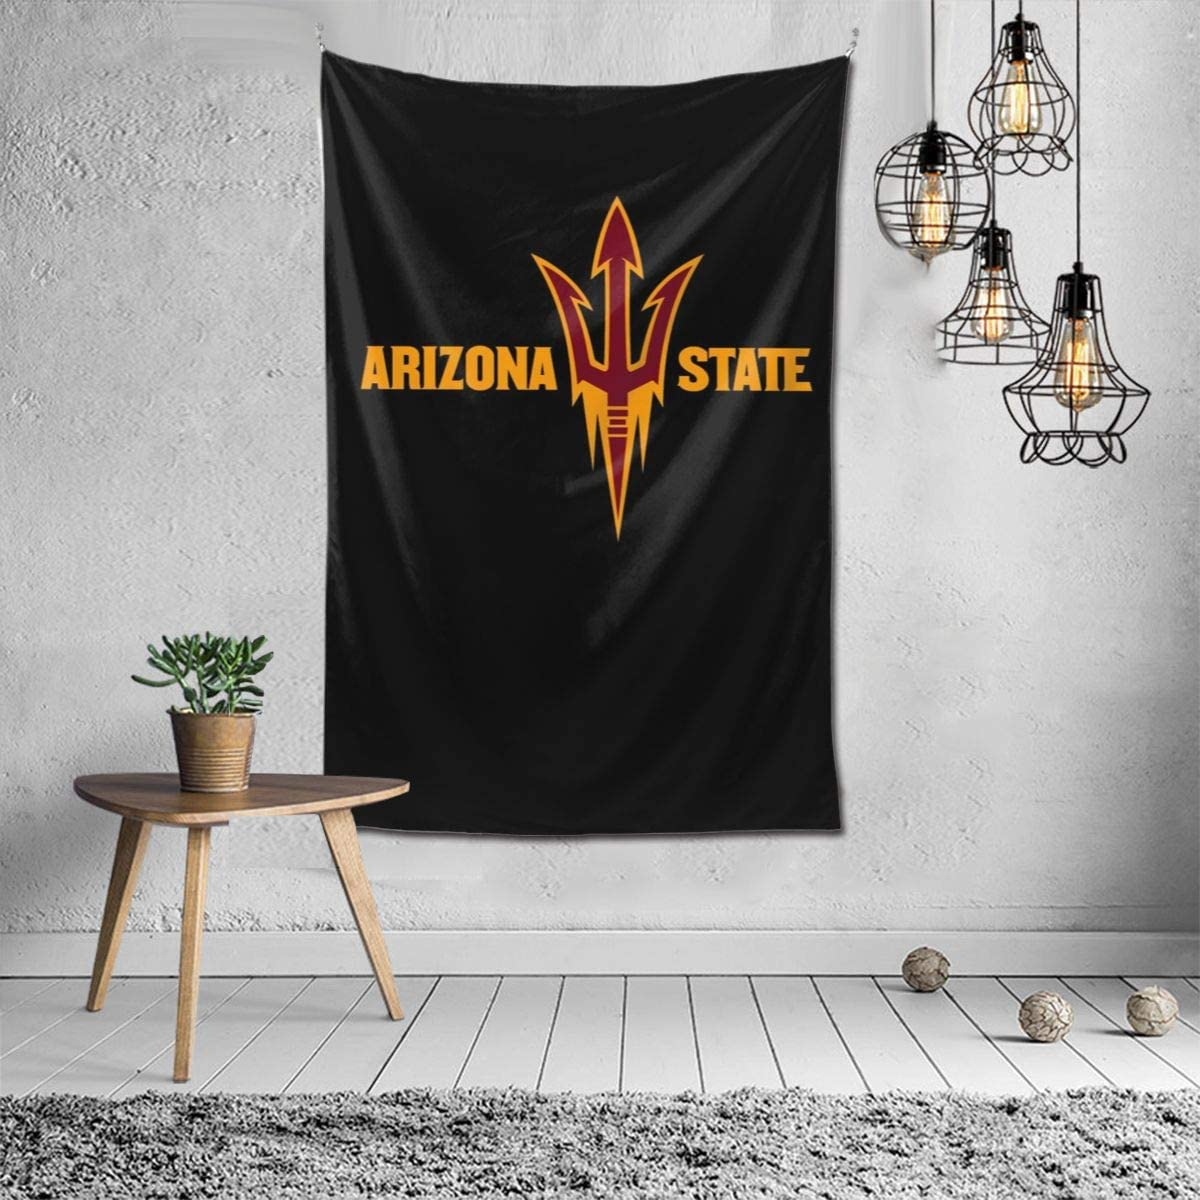 NCAA Arizona State Sun Devils Tapestry Wall Hanging, Tapestry Art Decoration Closet Bed Living Room Bedroom Dormitory Bedroom Interior Home Decoration Tapestry 60 40inch